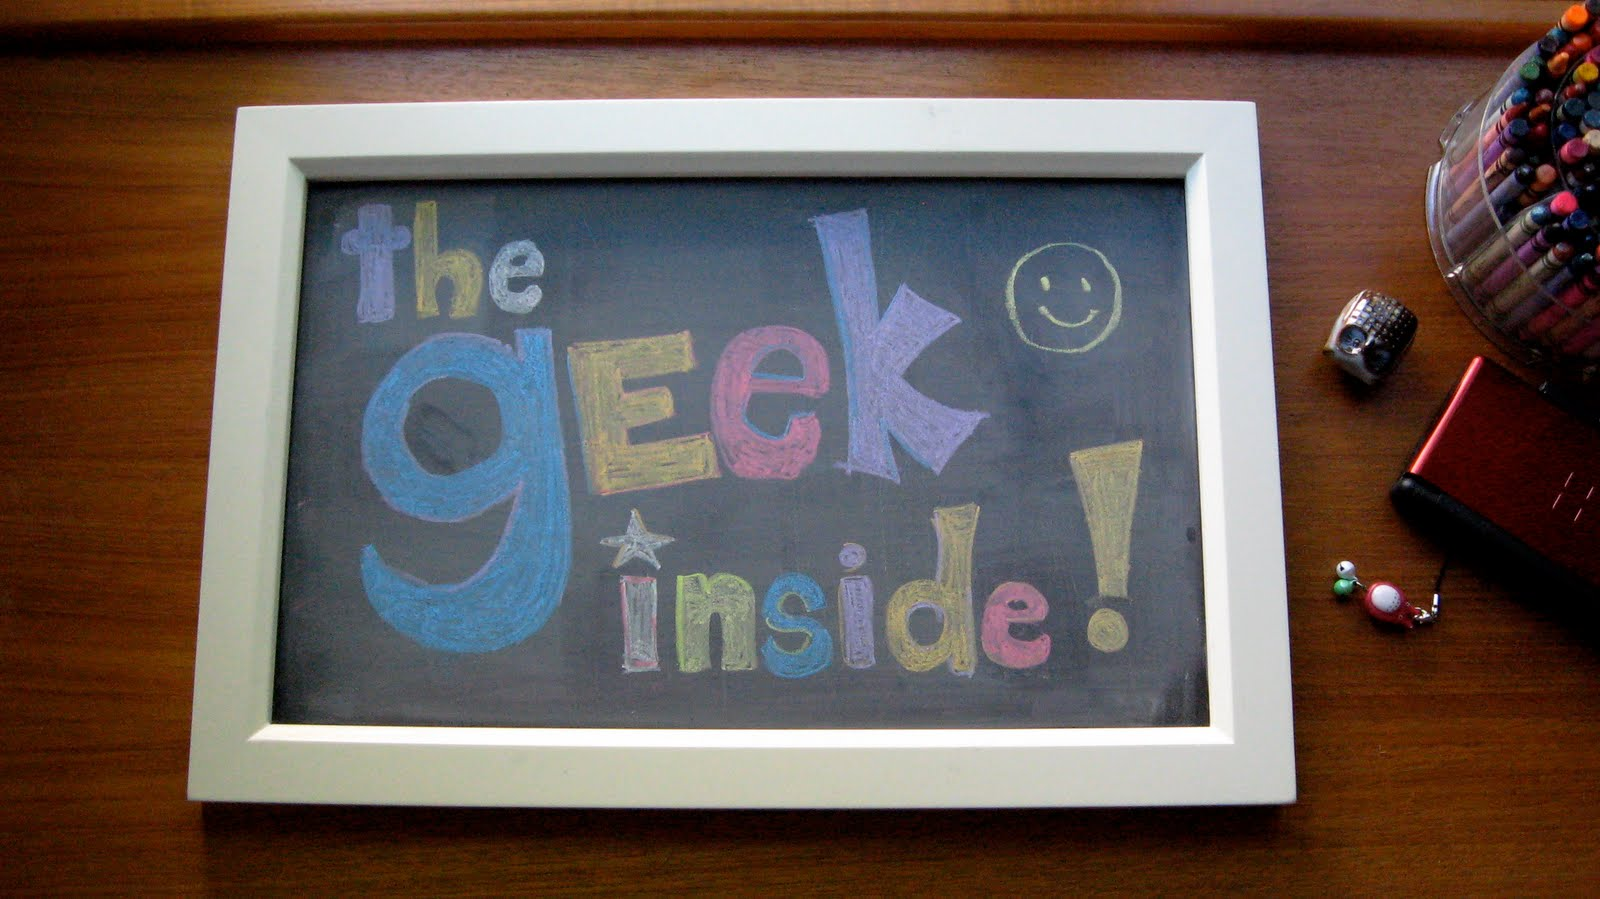 The Geek Inside